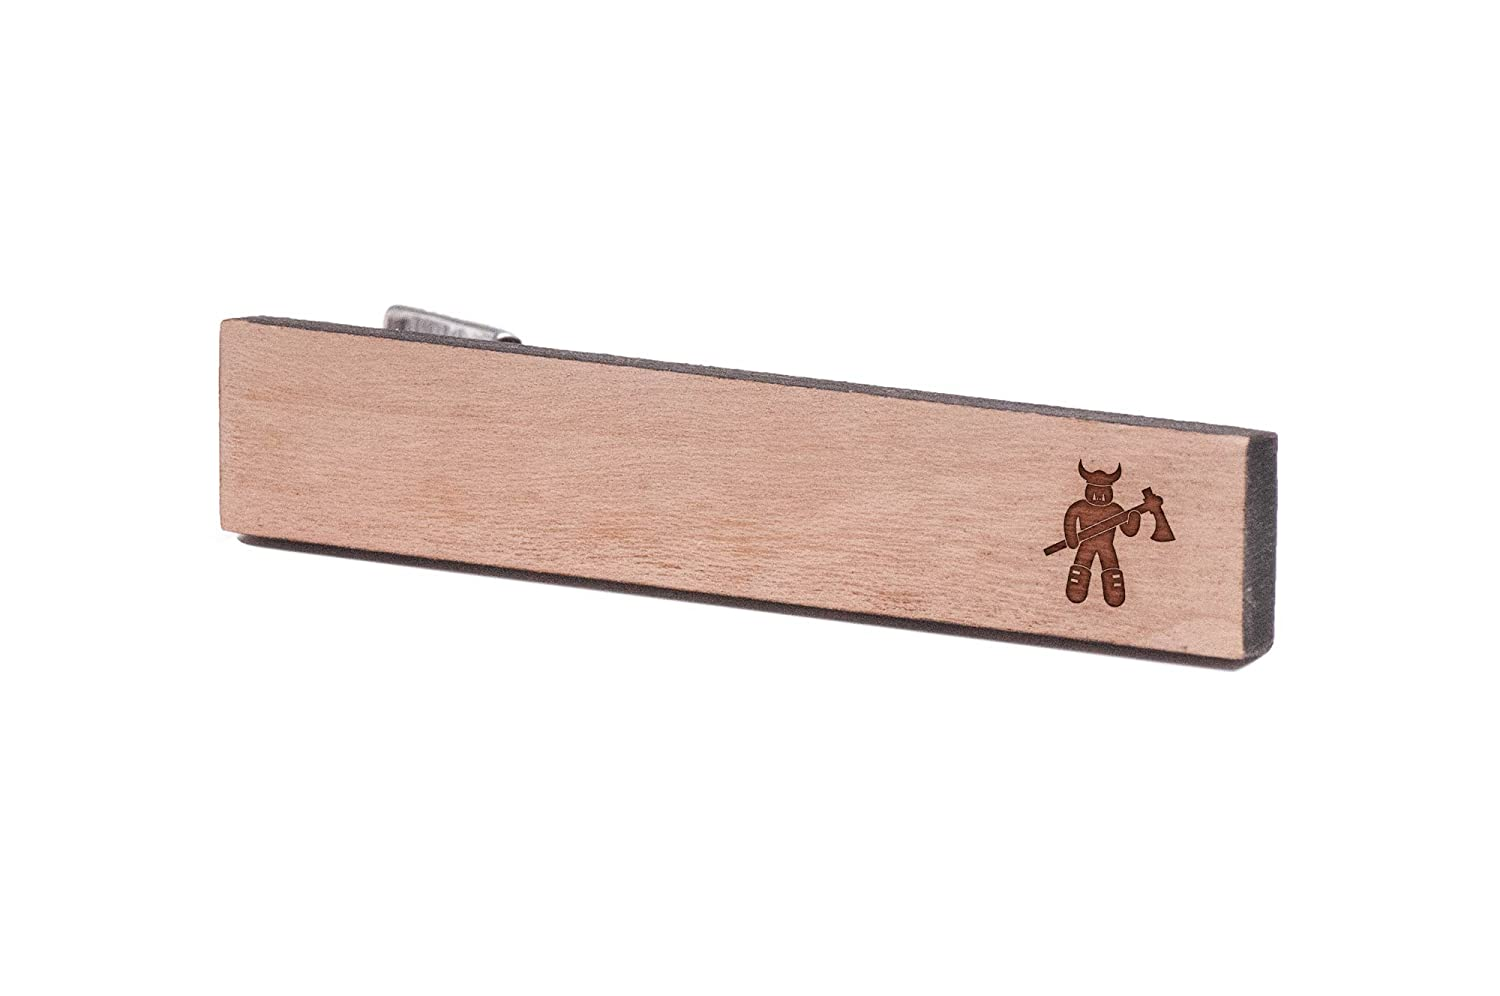 Wooden Accessories Company Wooden Tie Clips with Laser Engraved Orc Design Cherry Wood Tie Bar Engraved in The USA